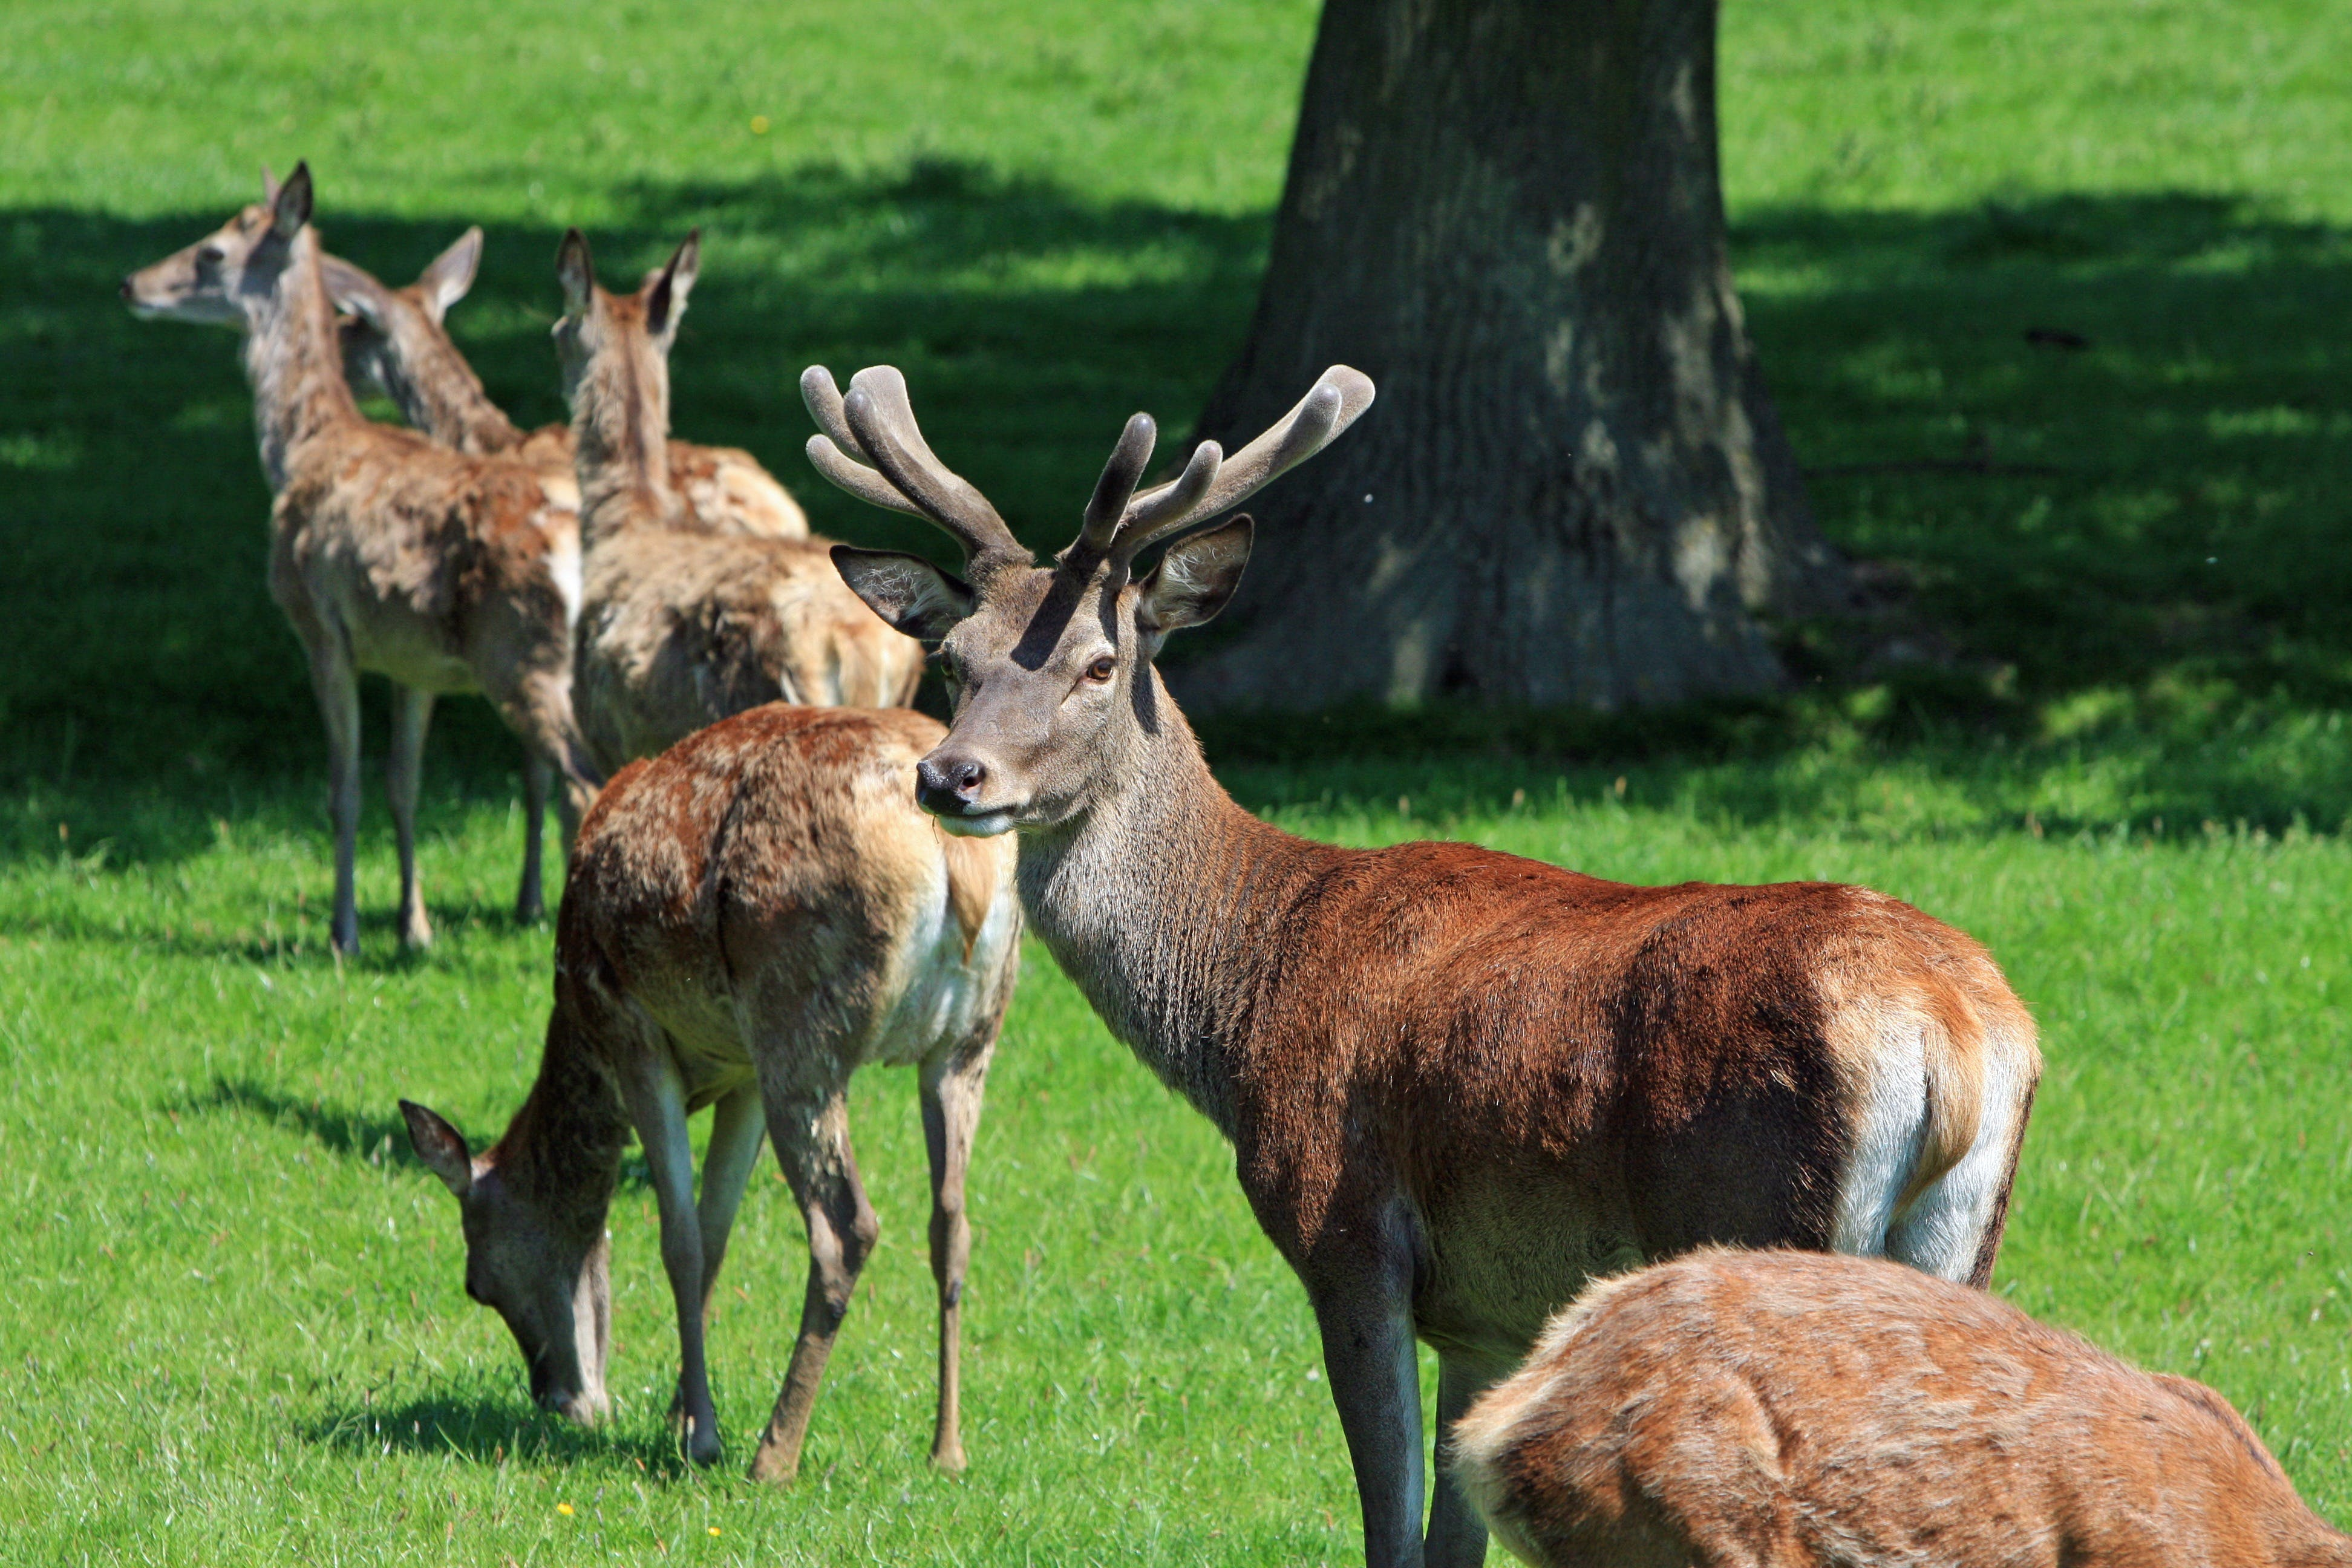 Group of Brown Deer on Green Grass Near Tree during Daytime